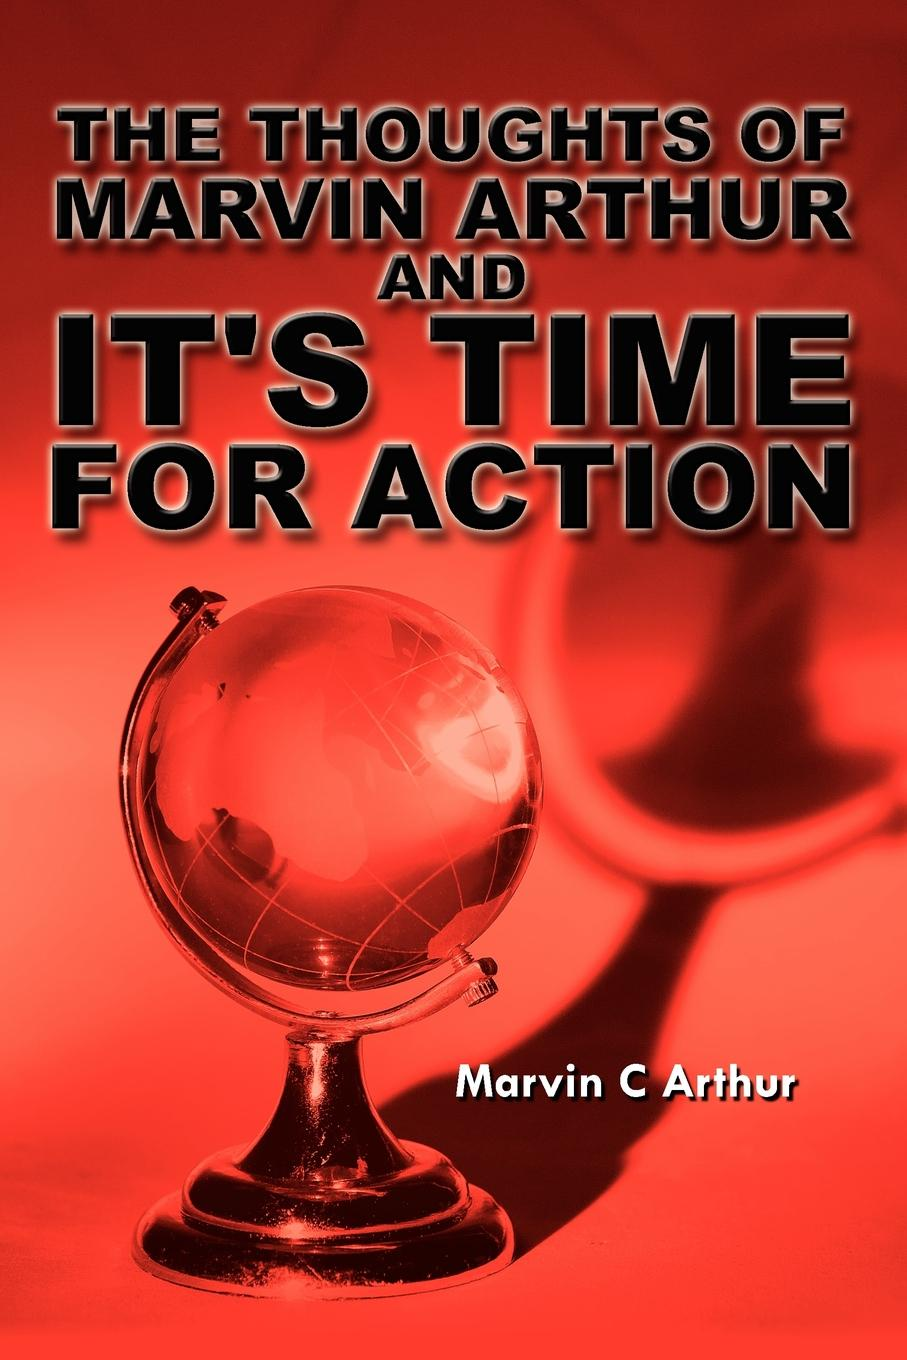 Marvin C. Arthur The Thoughts of and Its Time for Action